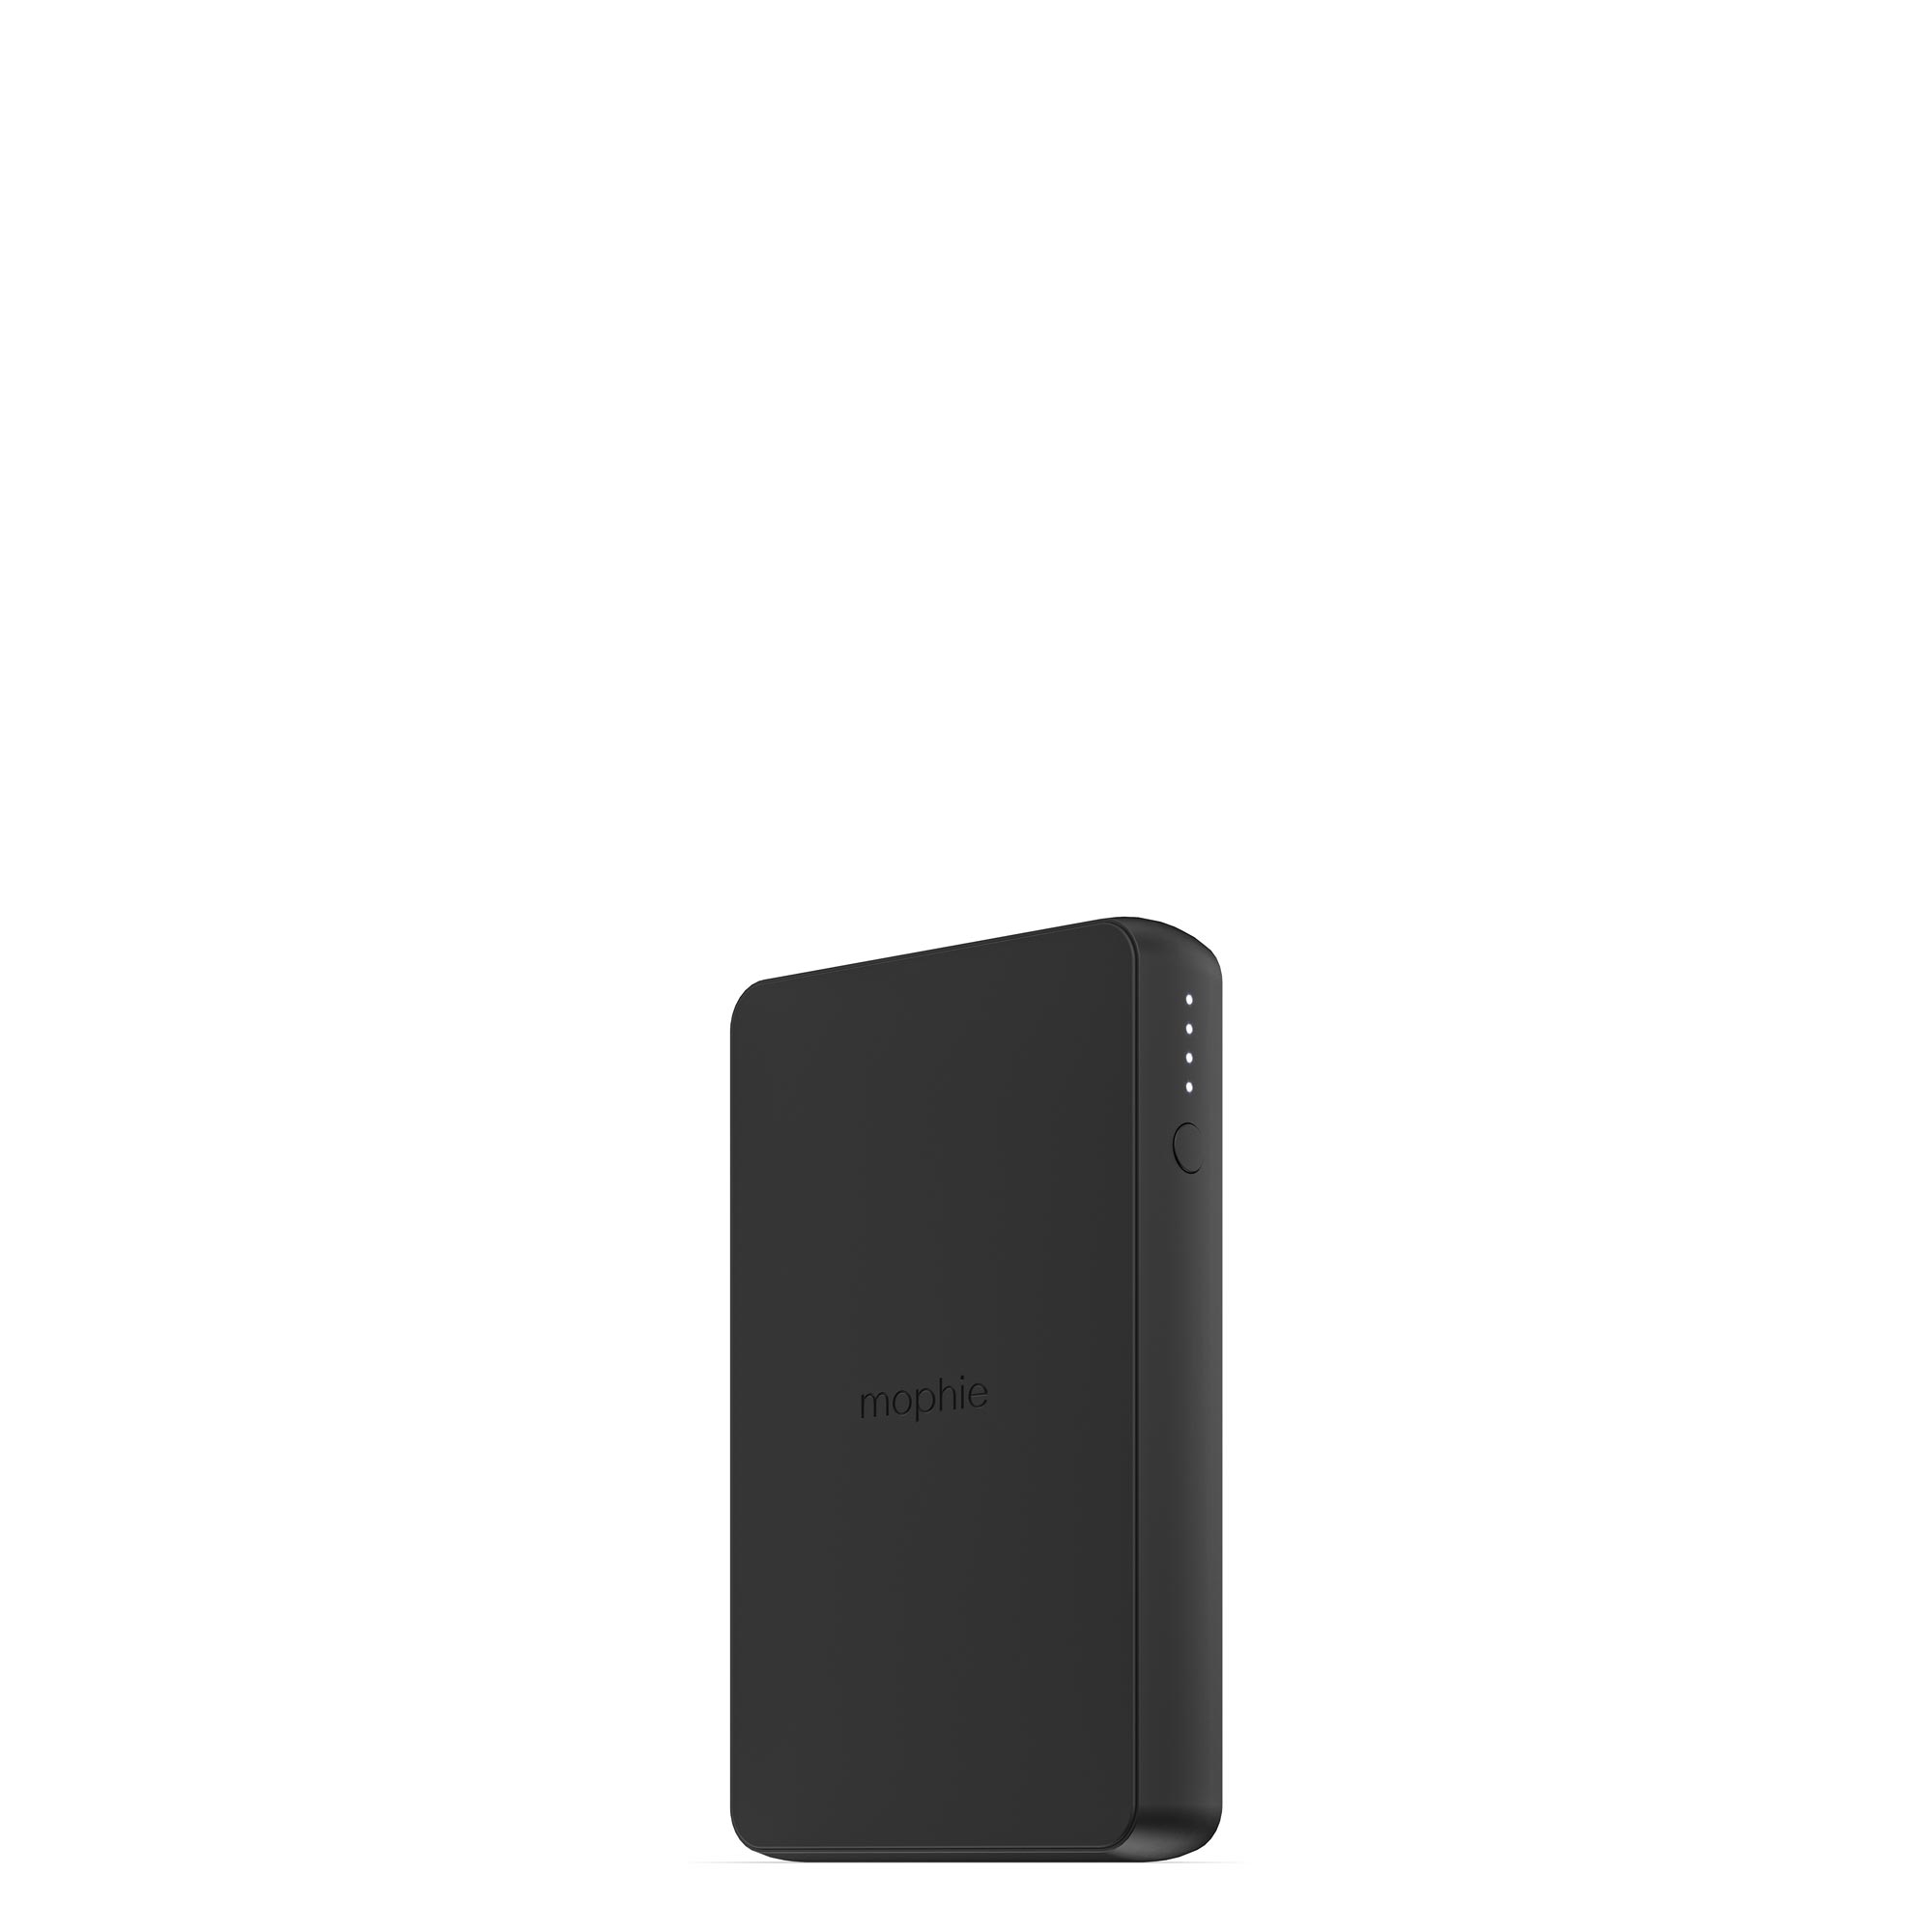 Mophie 401101517 power bank Black 6040 mAh